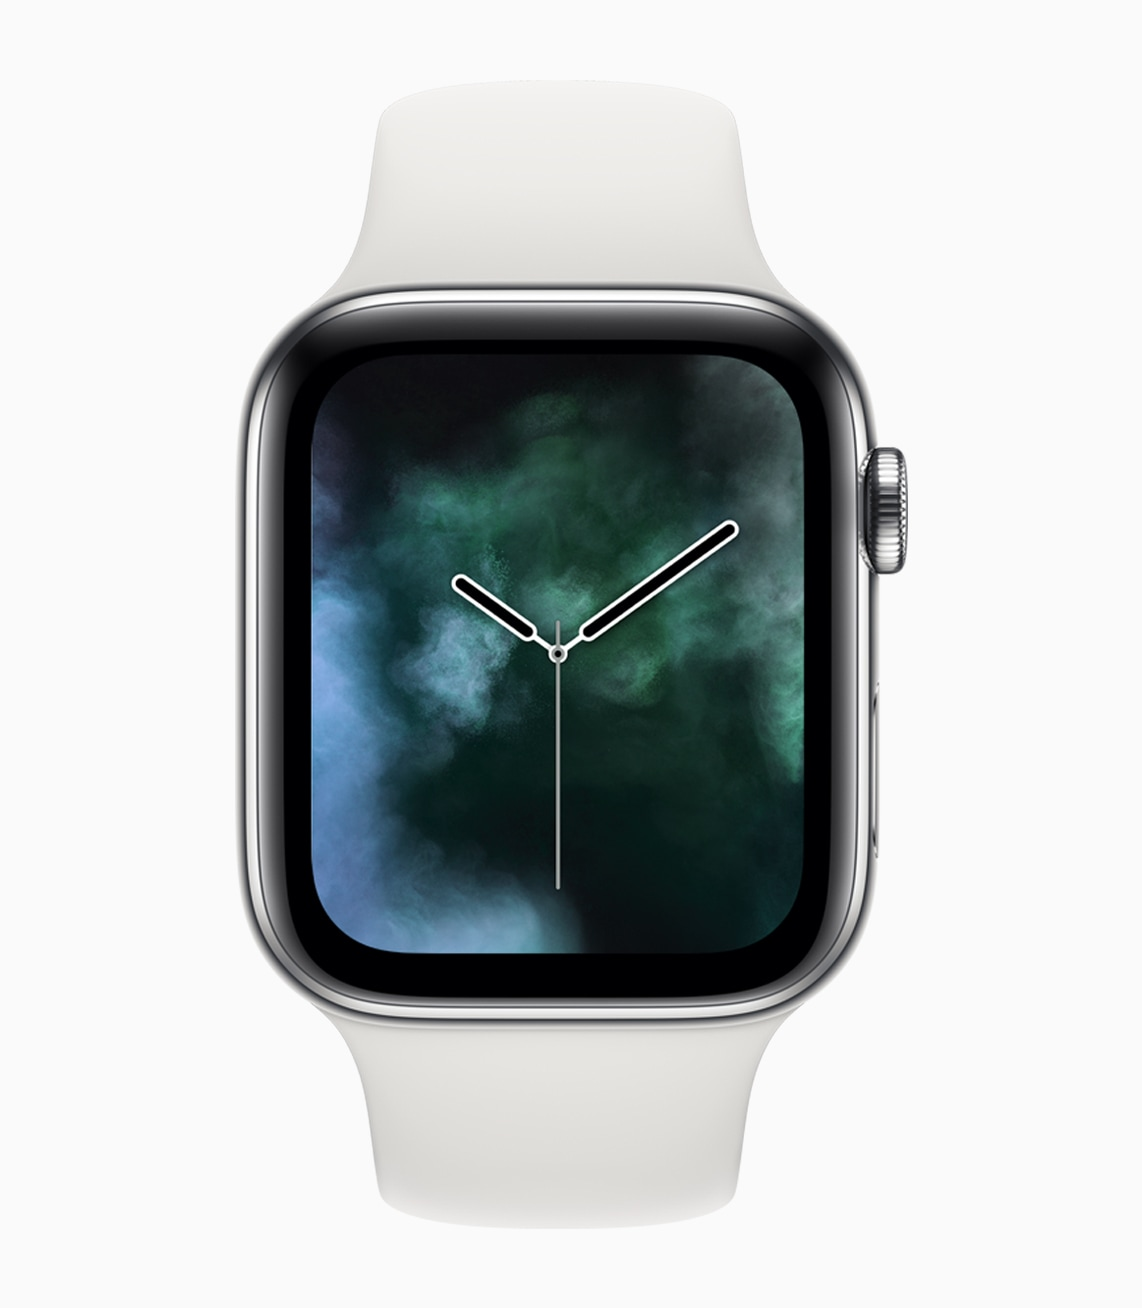 Mostrador de vapor no Apple Watch Series 4